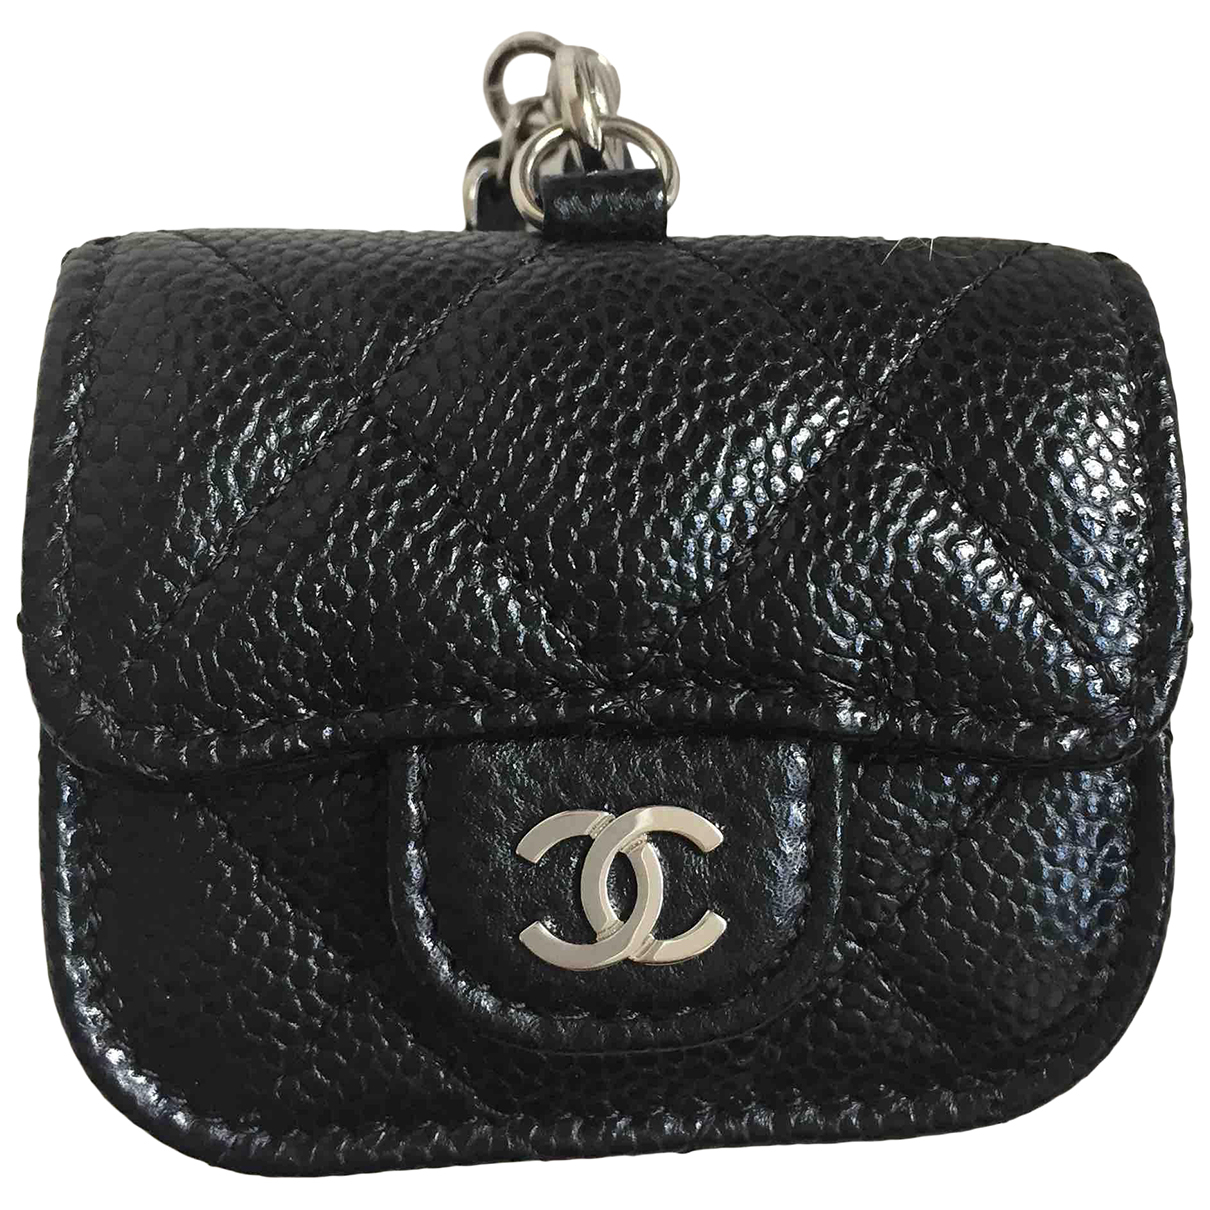 Chanel N Black Leather Accessories for Life & Living N